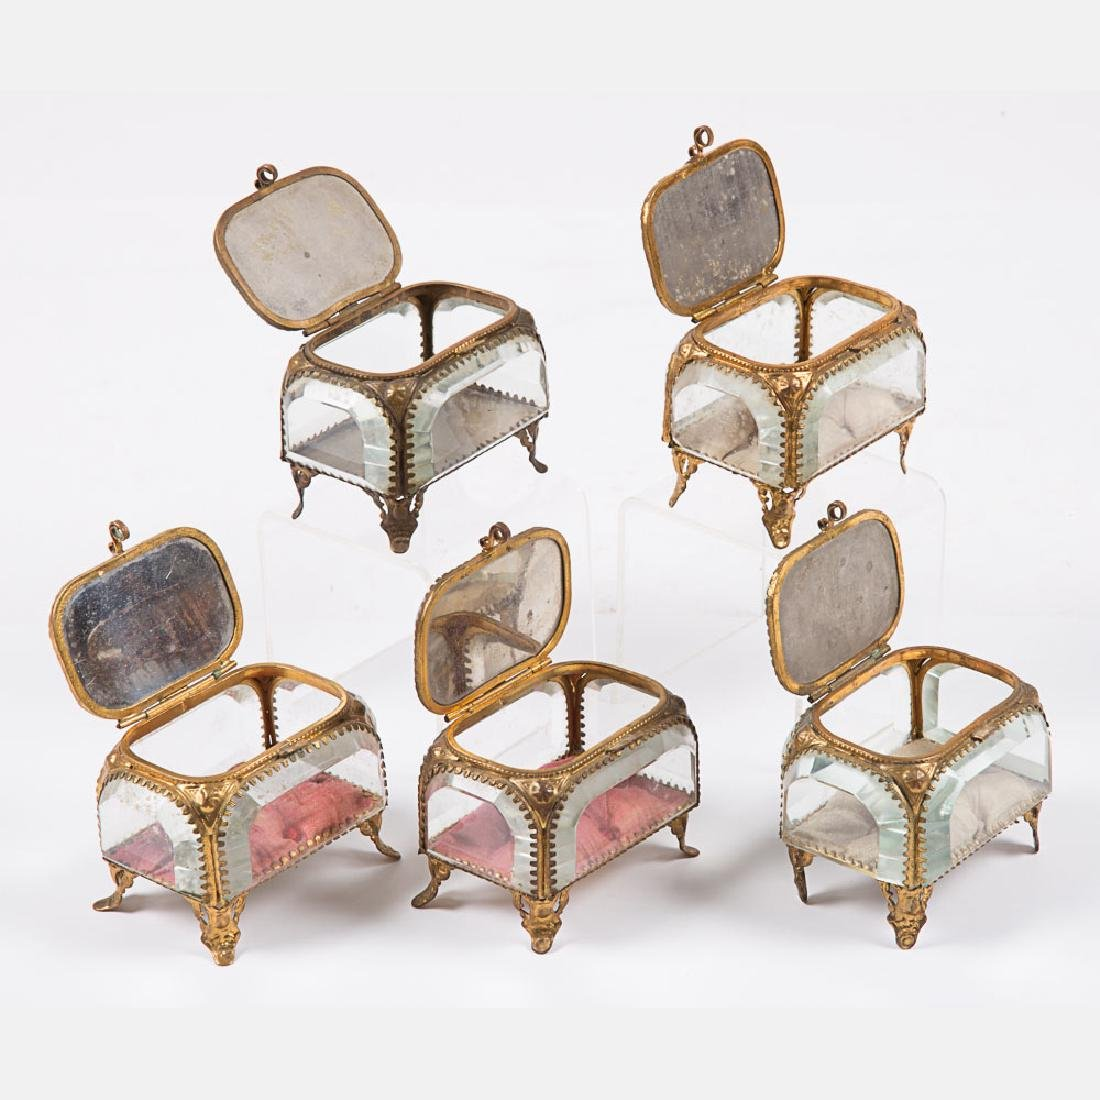 A Group of Five Glass and Brass Jewelry Boxes from the - 4